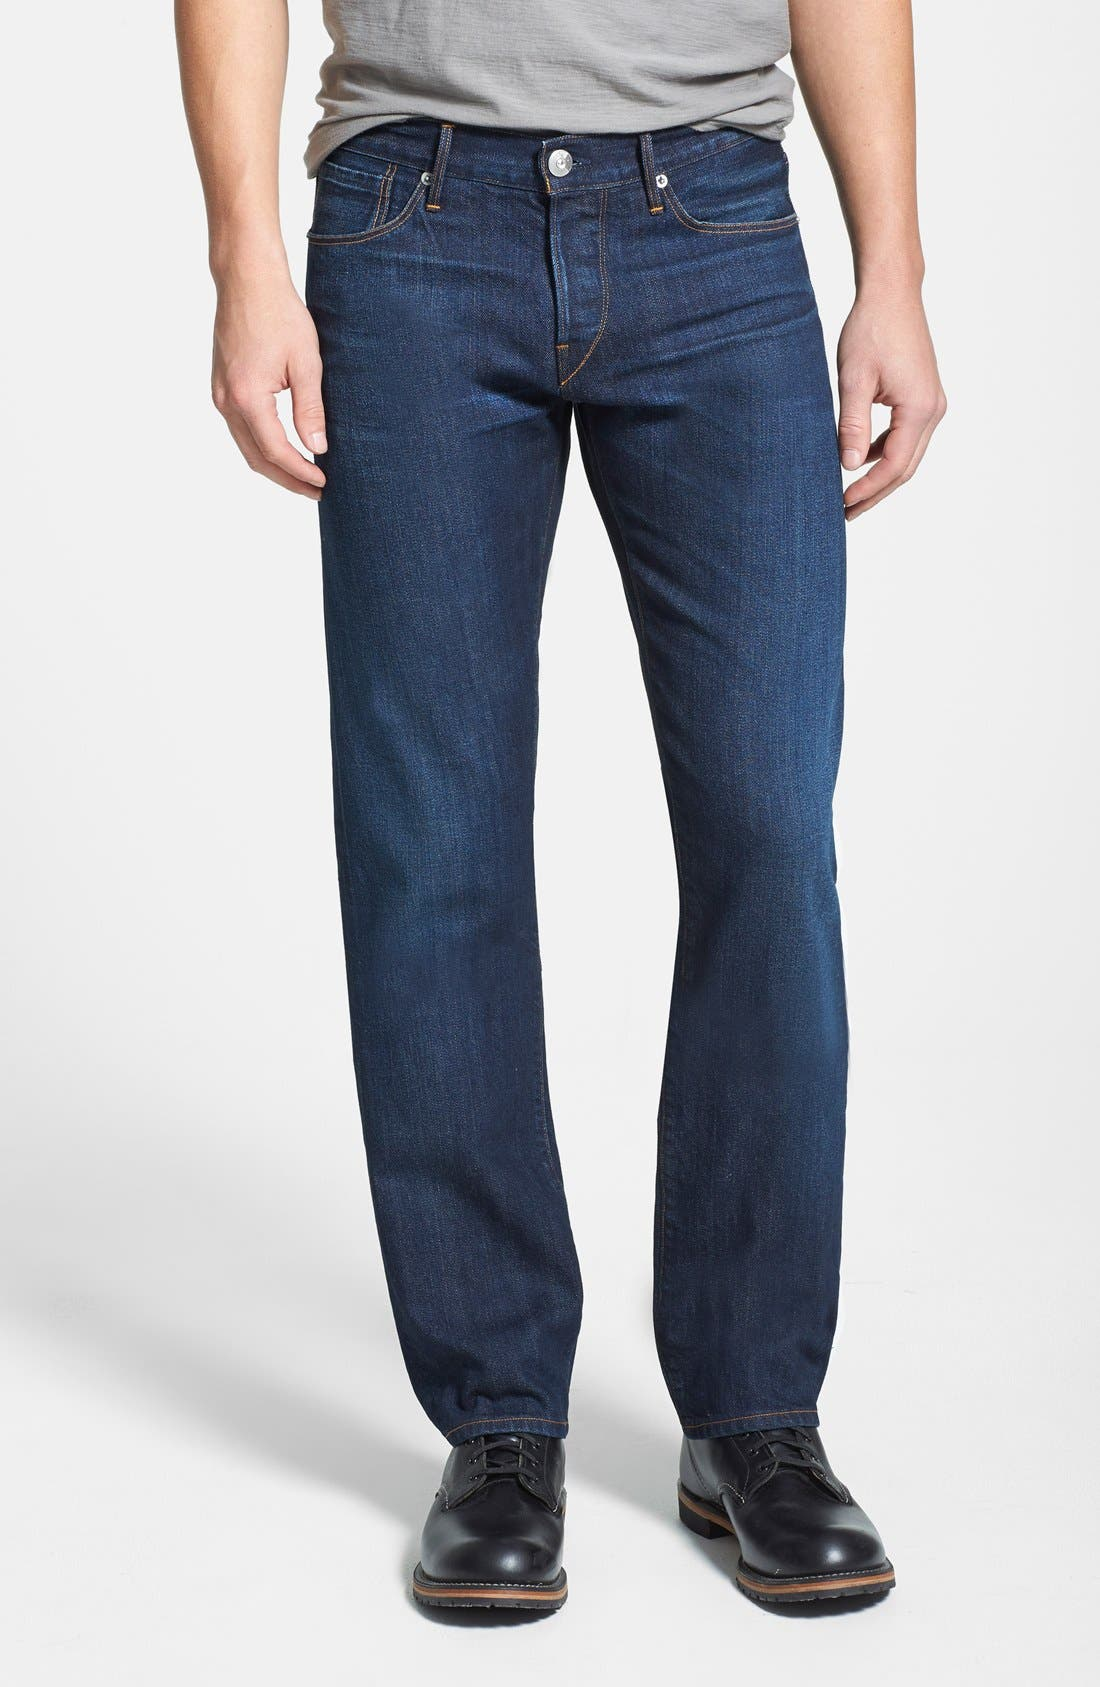 3x1 NYC 'M4' Straight Leg Selvedge Jeans (Makers)